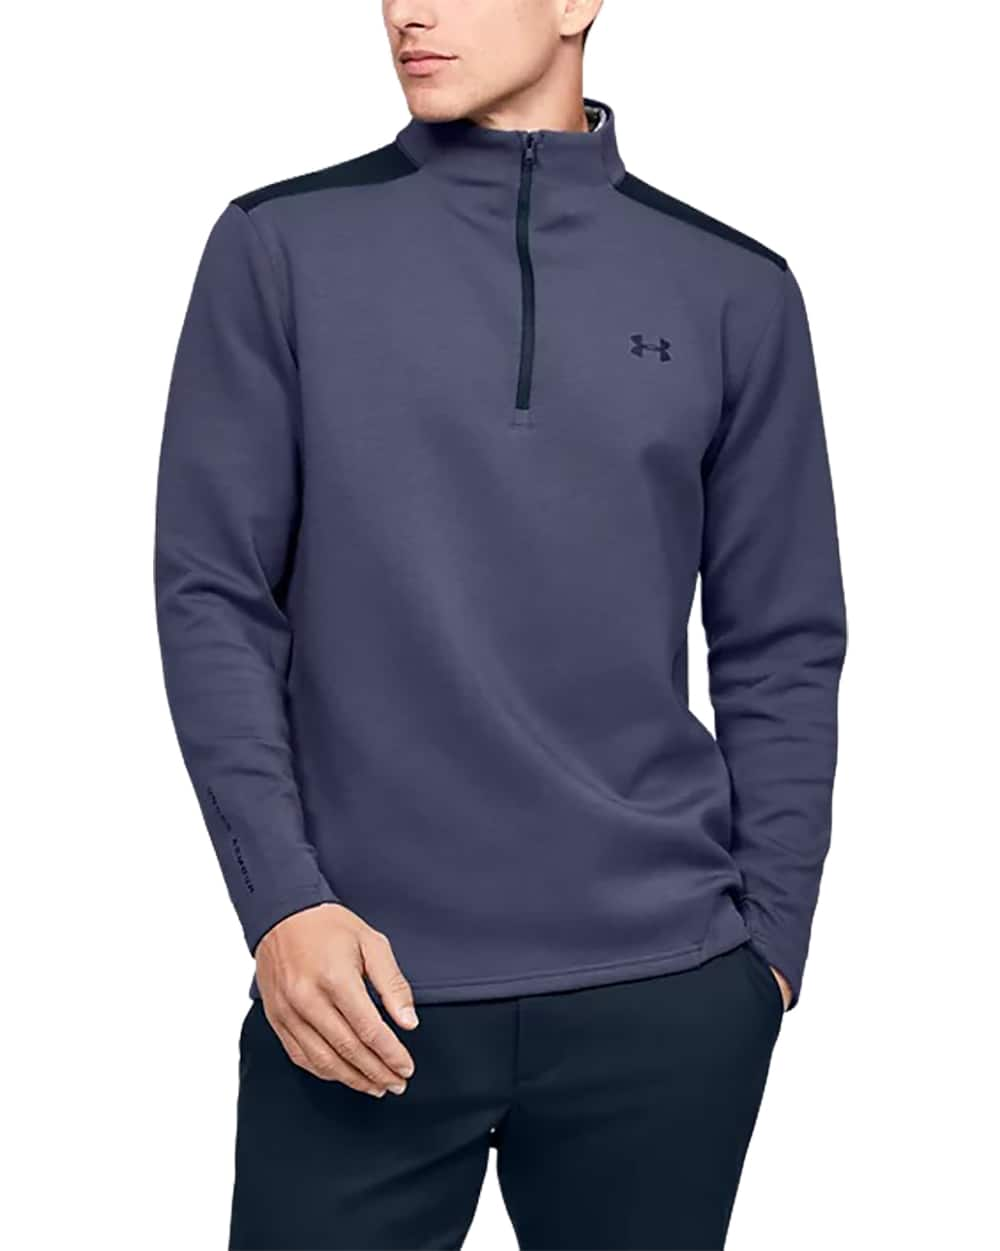 Under Armour Men's UA Storm Playoff ½ Zip (Blue Ink / Academy) $35 or Less + FS